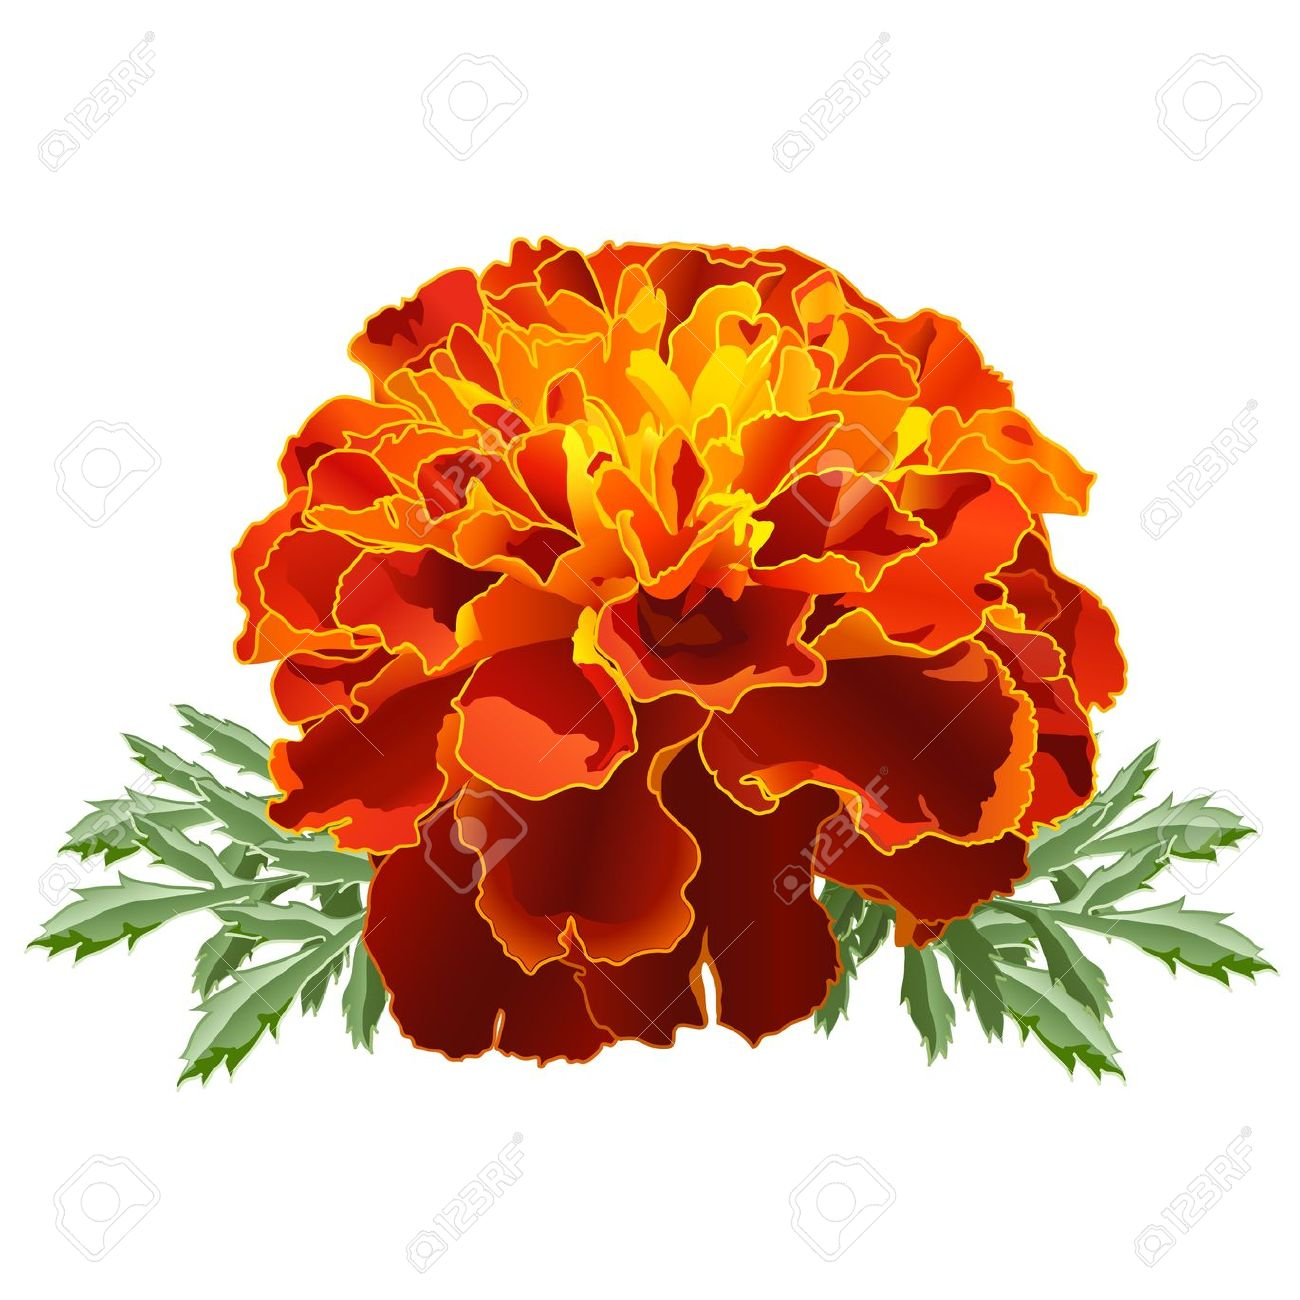 Marigold clipart #11, Download drawings